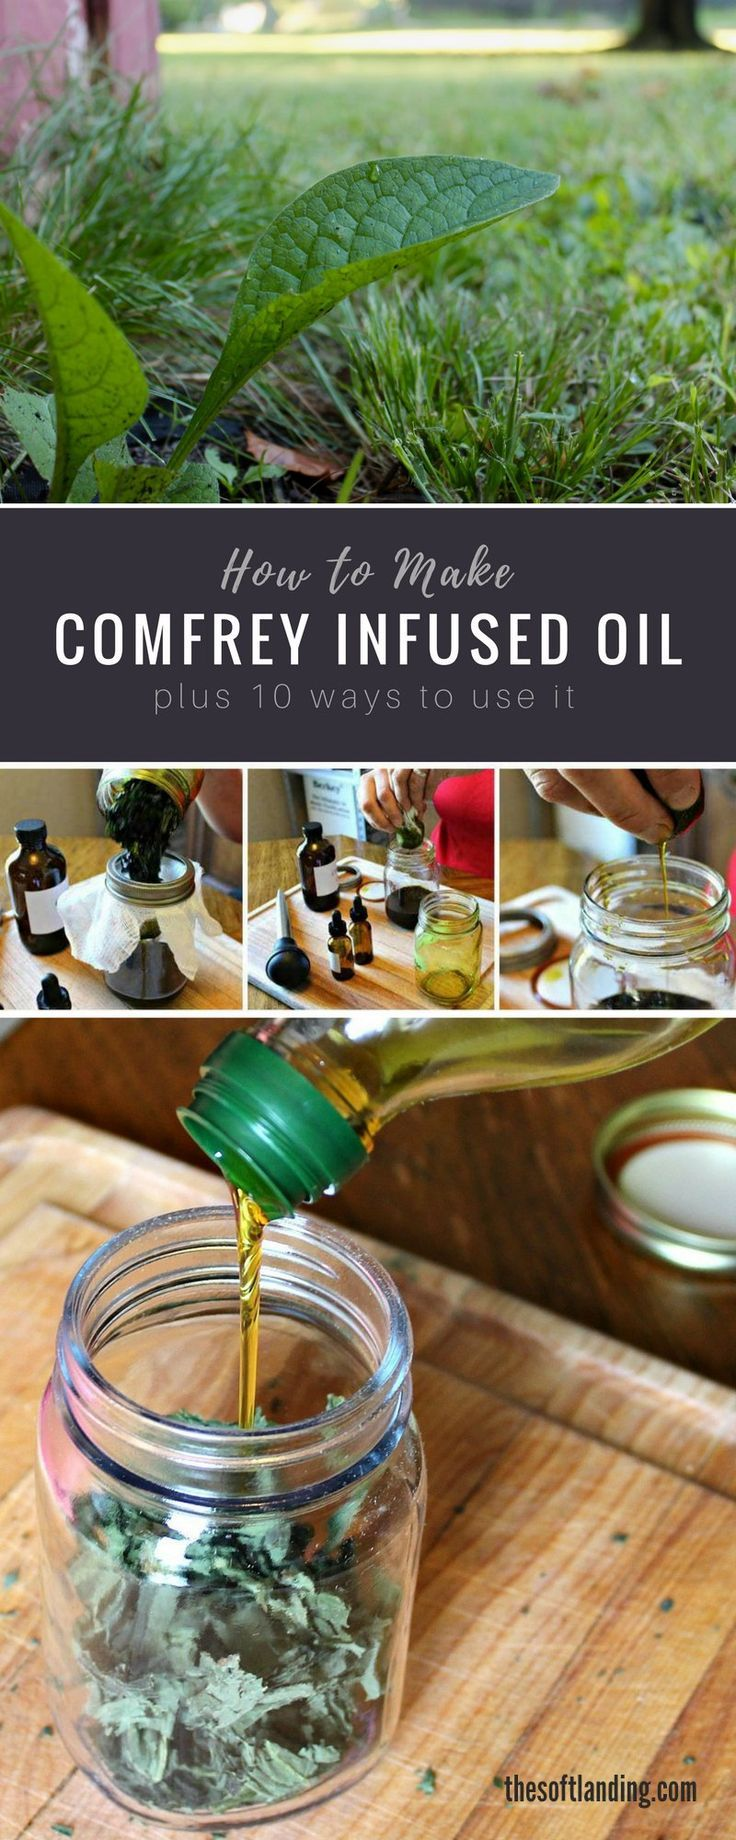 How to Make Comfrey Infused Oil + 10 Effective Ways to Use It via @thesoftlanding